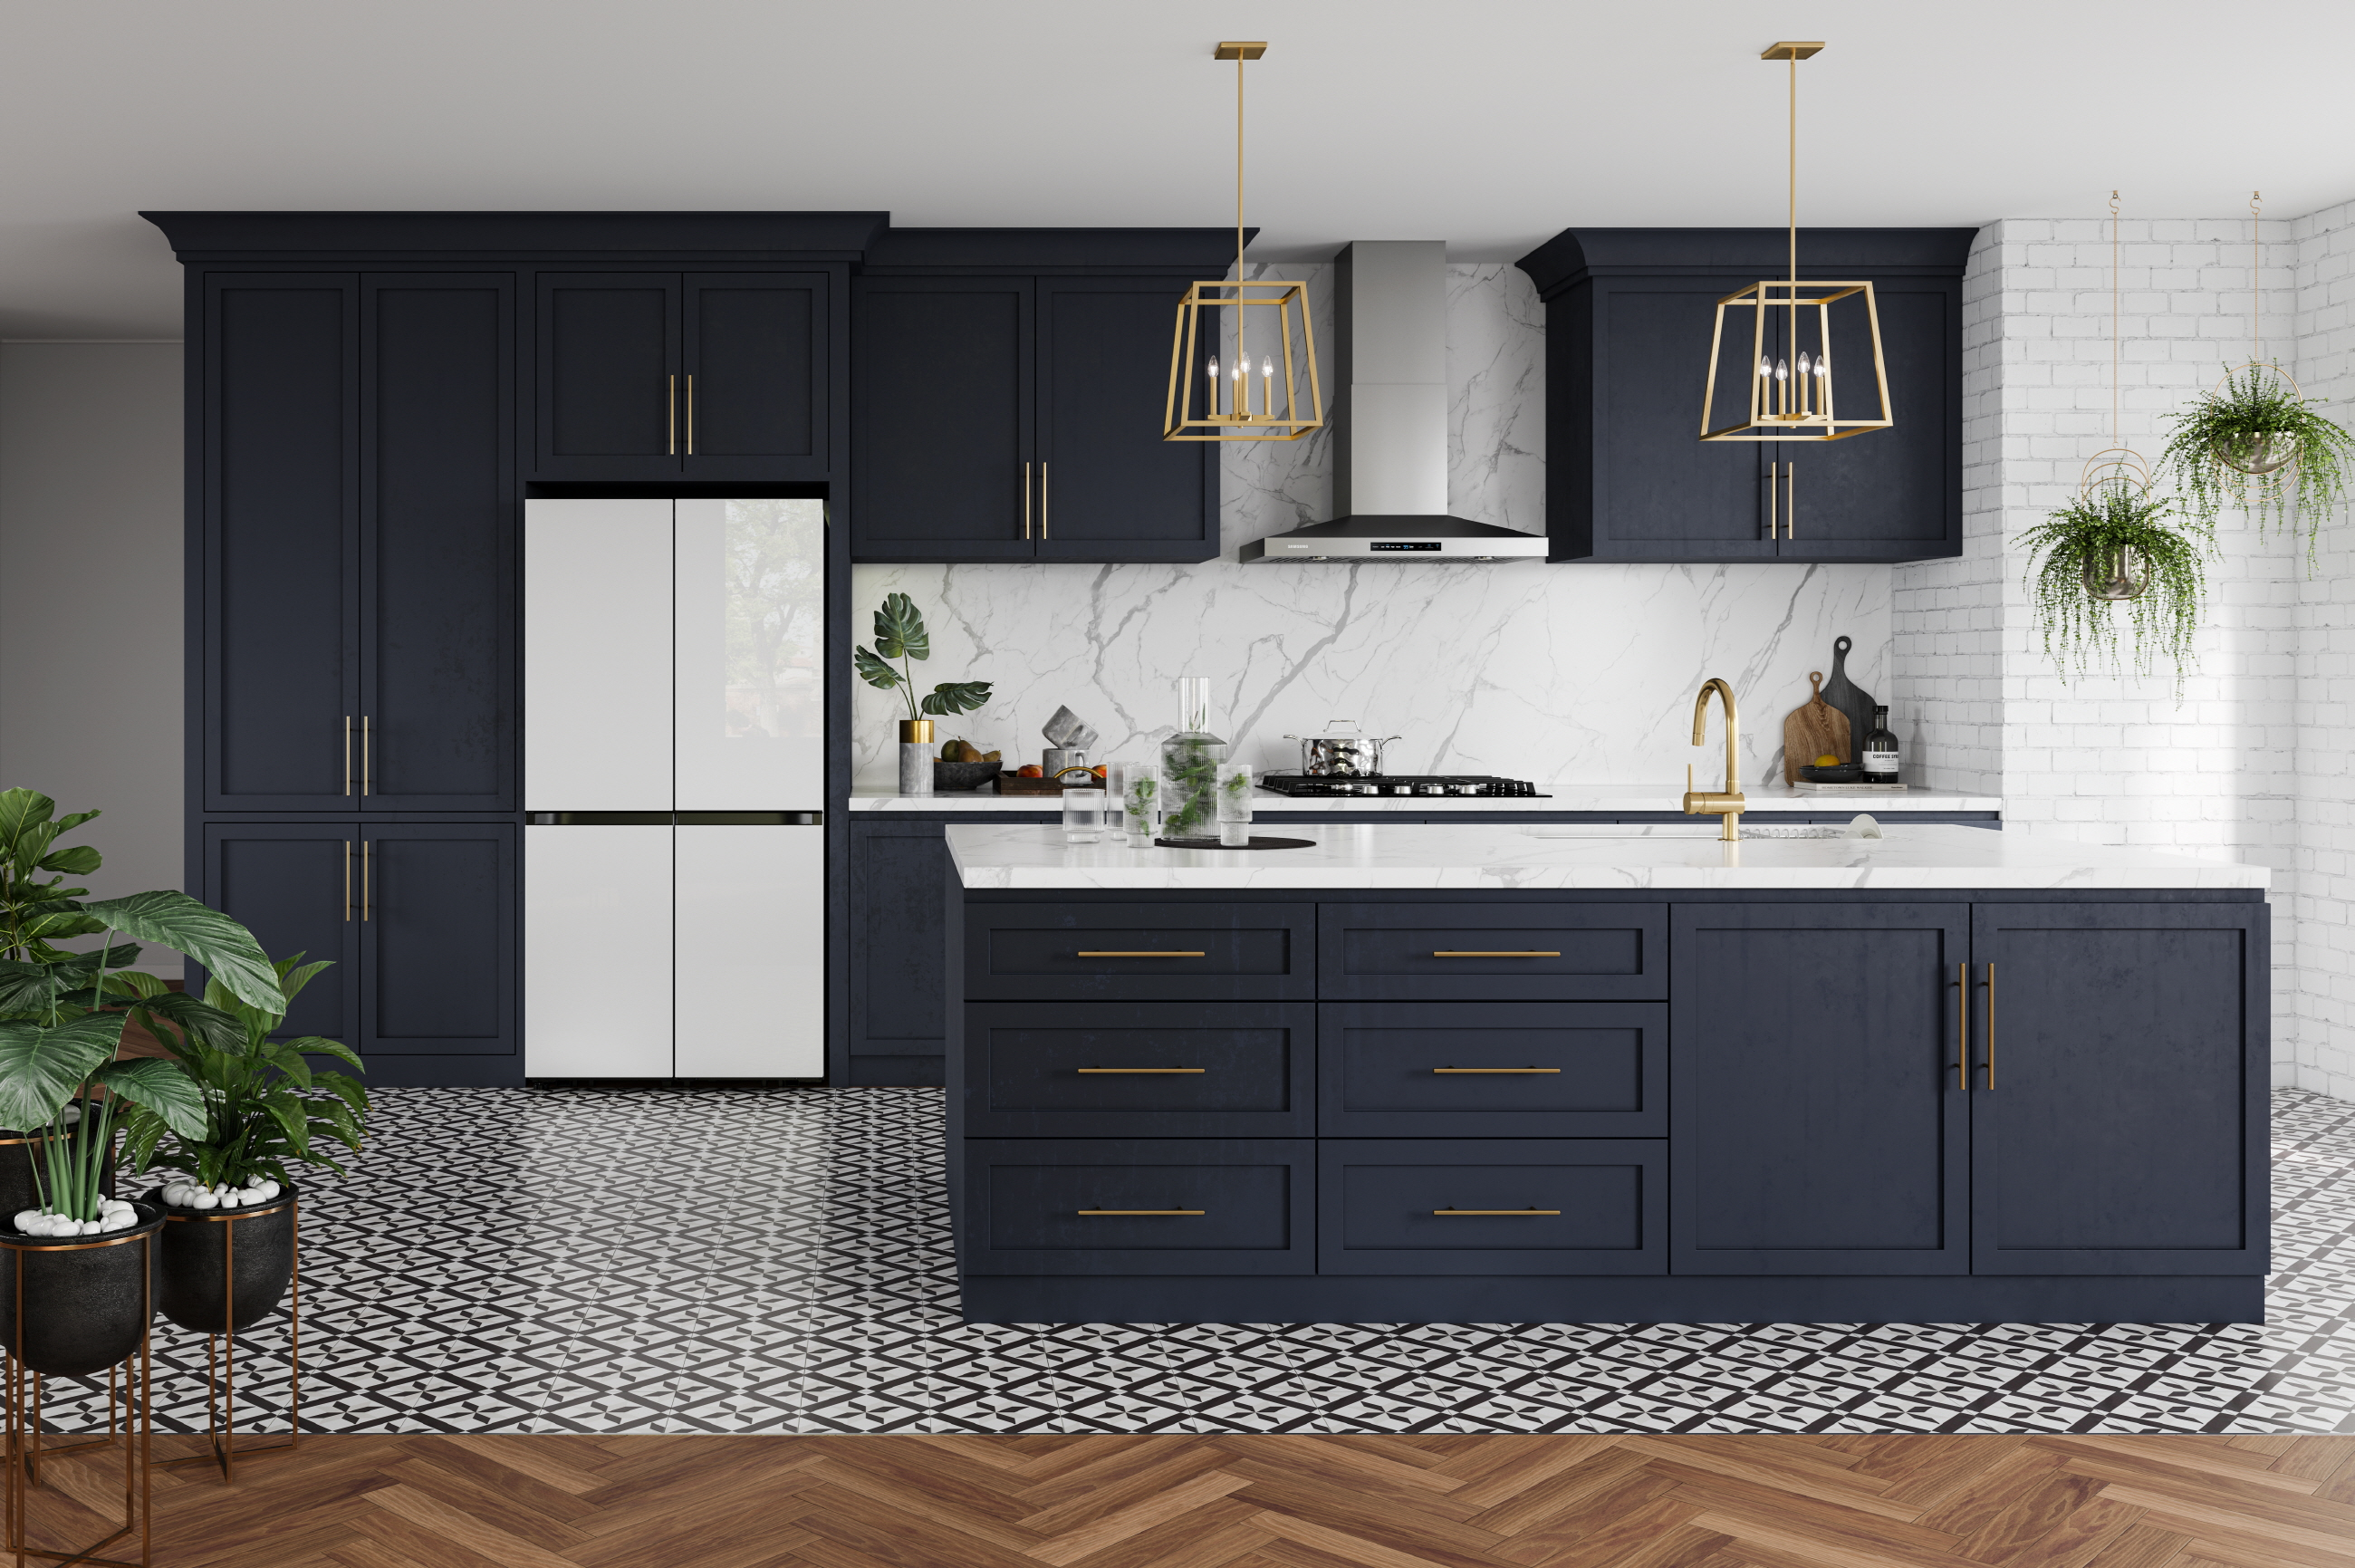 Samsung Expands Bespoke To New Markets Offering Customizable Refrigerators For Modern Kitchens Newsroom Global Media Library